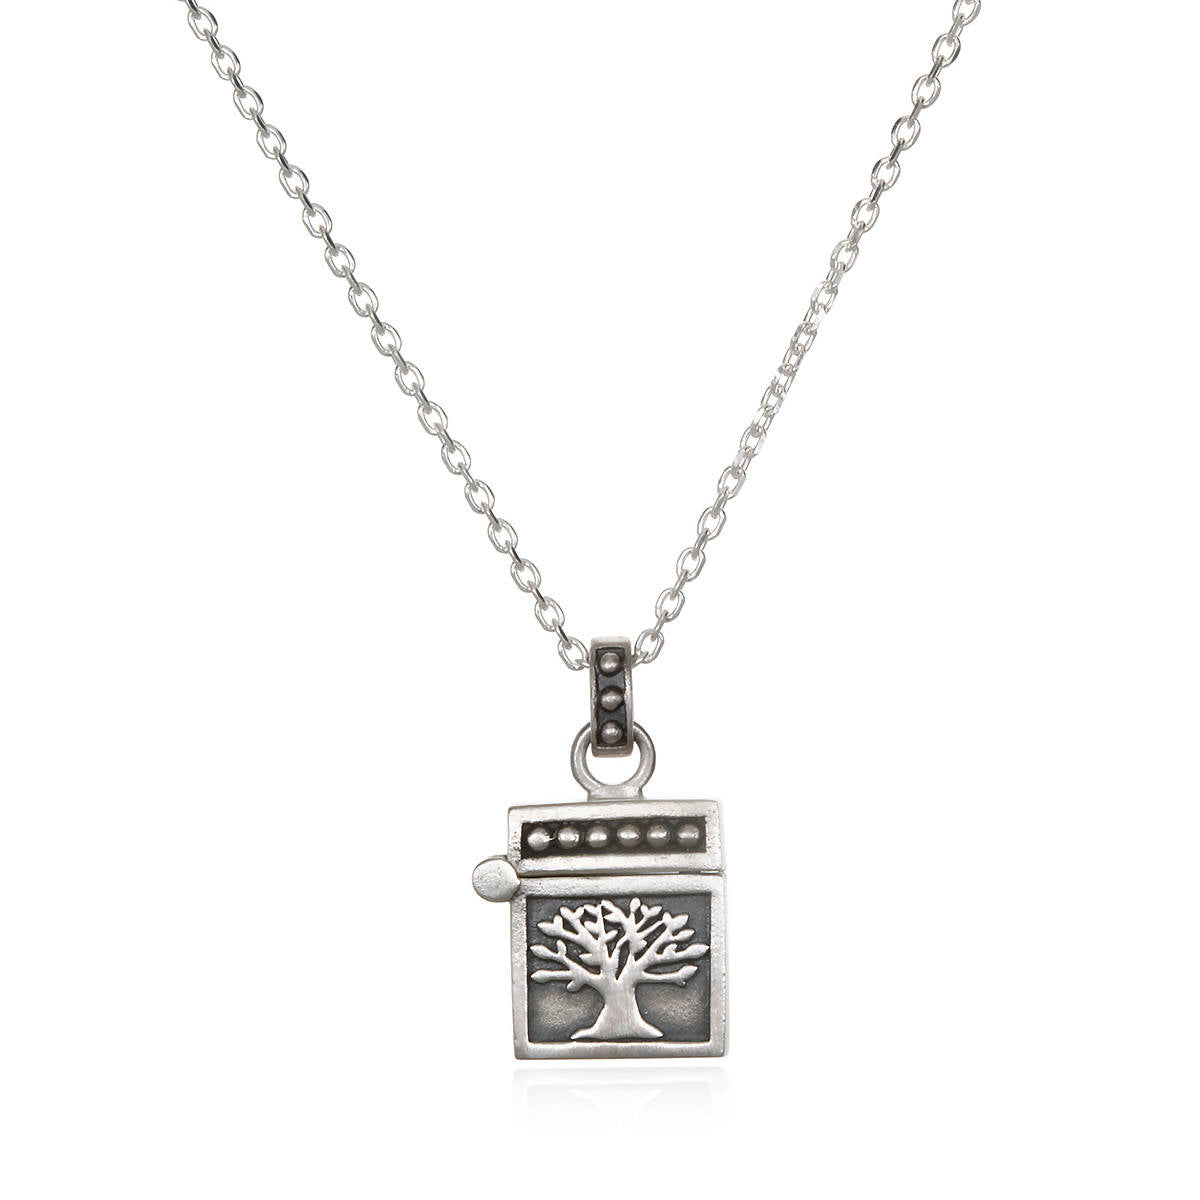 Silver Tree Prayer Box Necklace